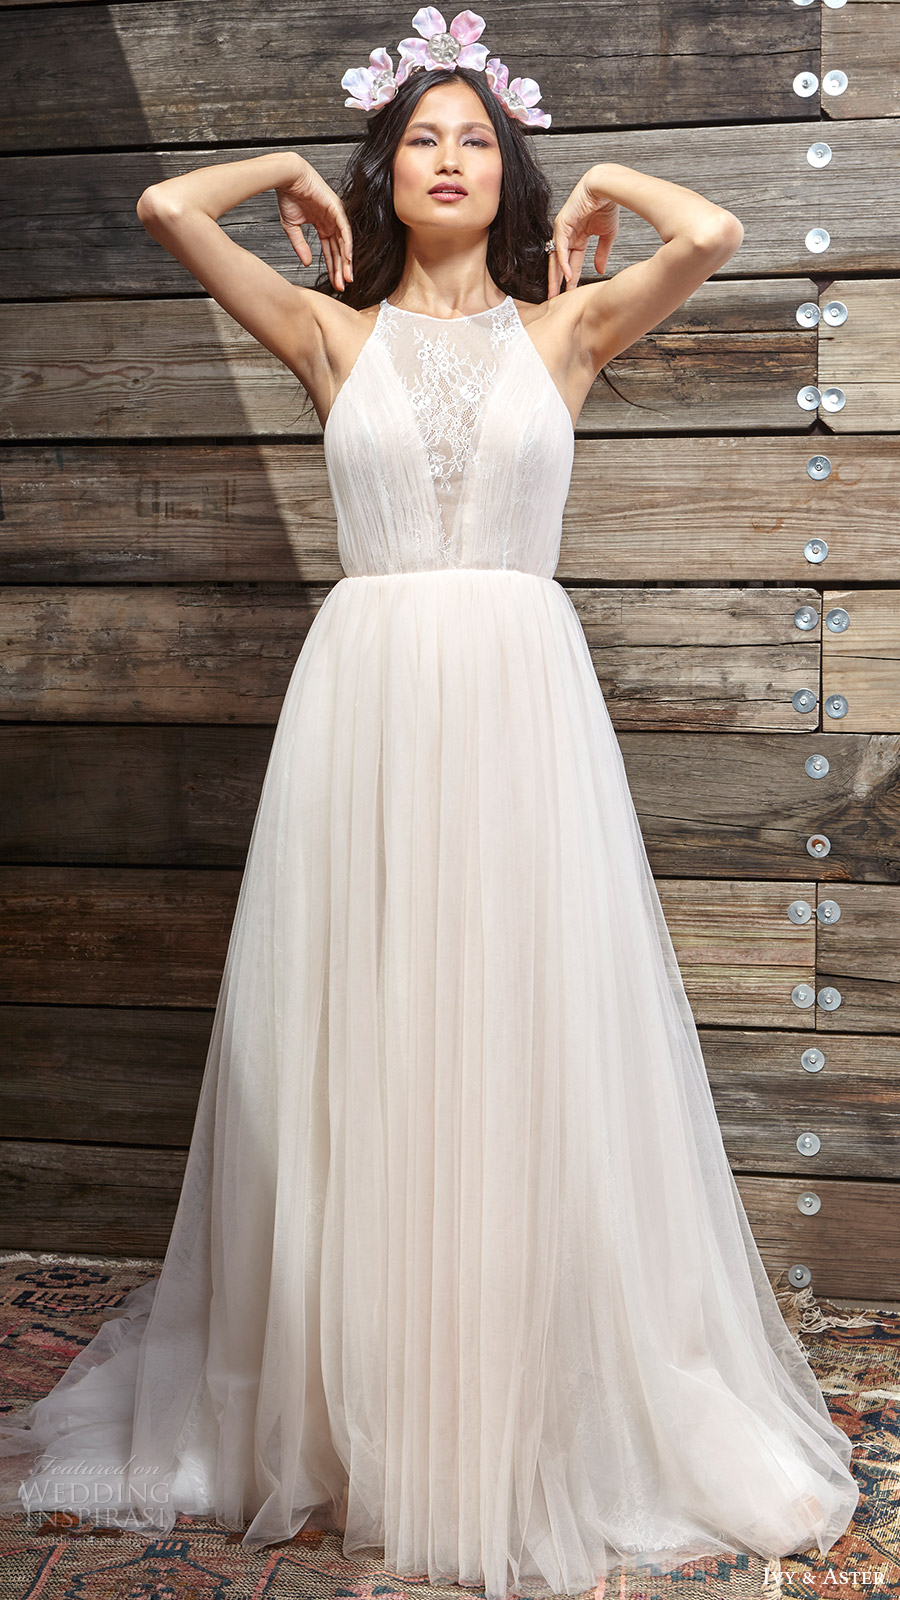 Ivy aster spring 2017 wedding dresses a moment in for Halter ball gown wedding dresses